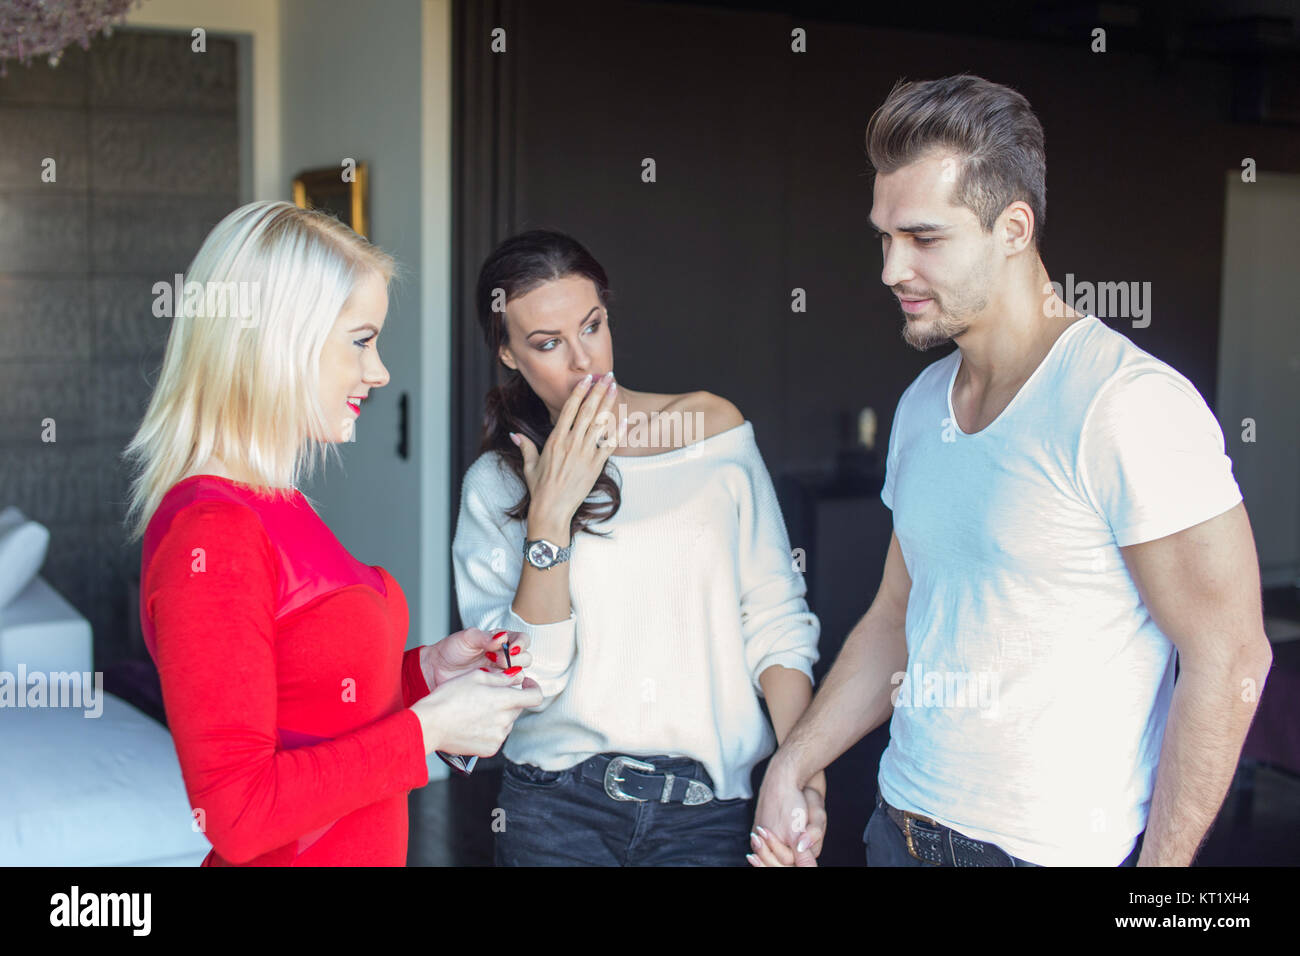 Girlfriend shocked on disloyal boyfriend flirting with blonde woman in red dress, indoors - Stock Image